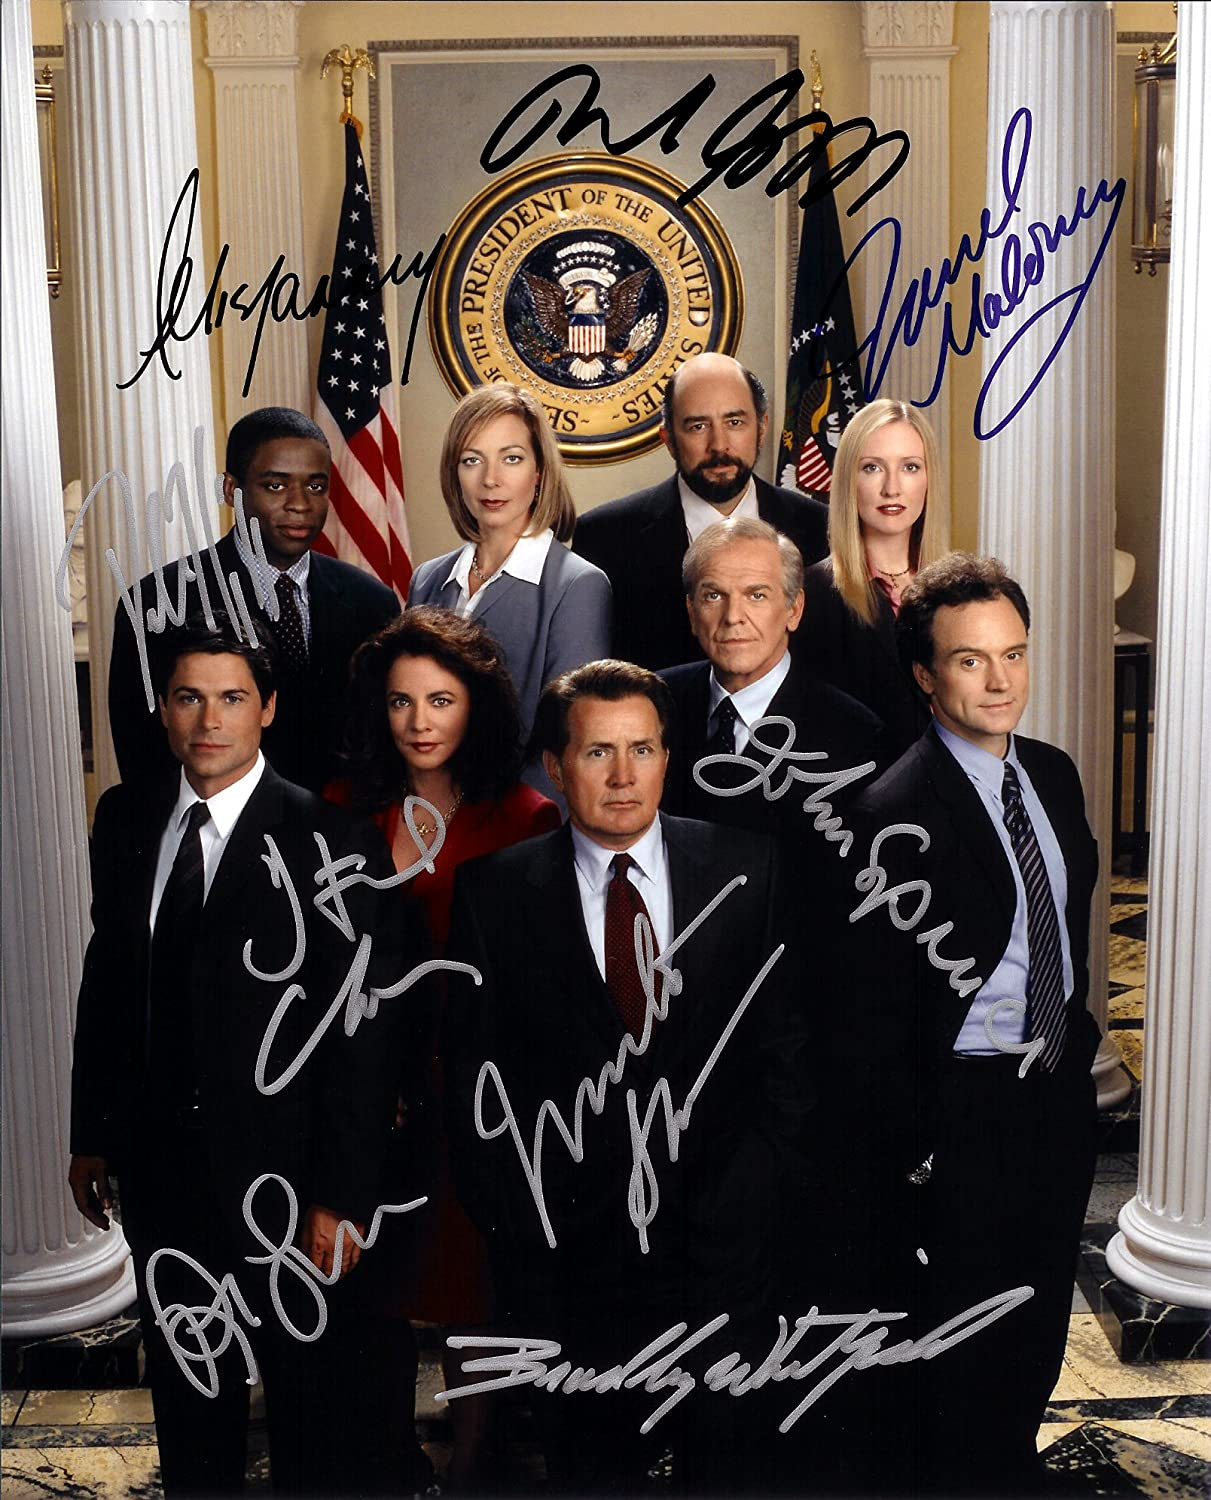 The West Wing TV Series Cast Signed Autographed 8 X 10 RP Photo - Mint Condition snsd yoona autographed signed original photo 4 6 inches collection new korean freeshipping 03 2017 01